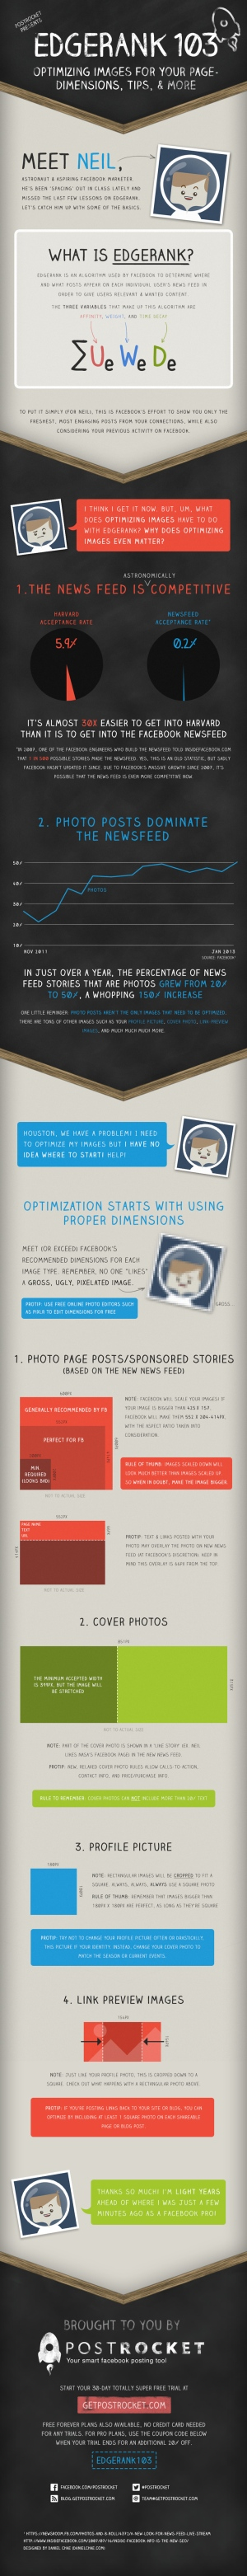 Optimizing images for Facebook page